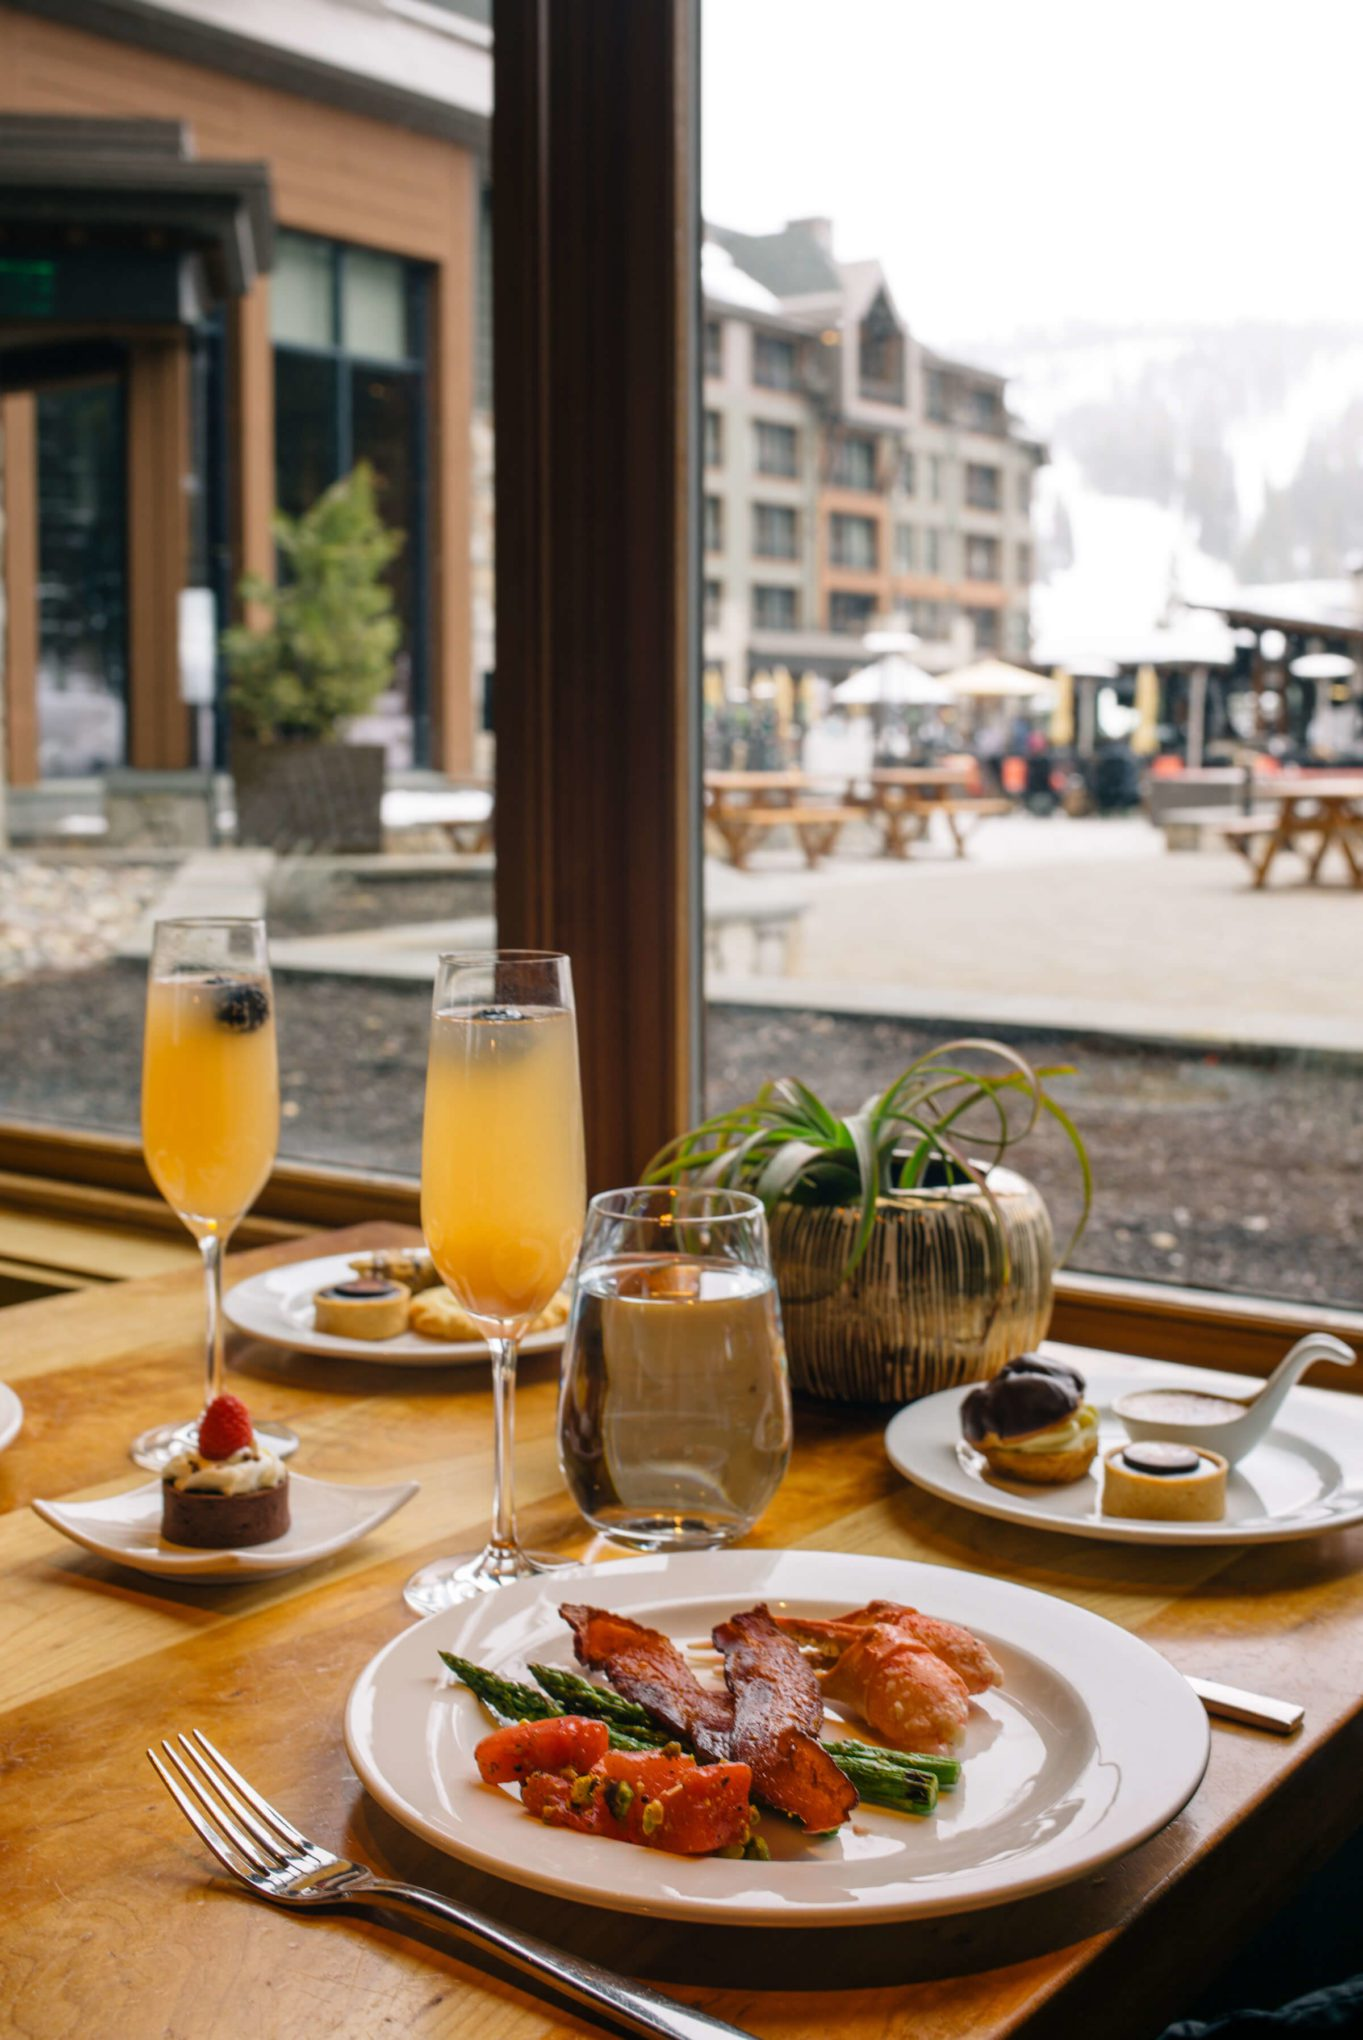 Brunch at Manzanita at The Ritz-Carlton Lake Tahoe CA overlooking the ski slopes, The Taste SF